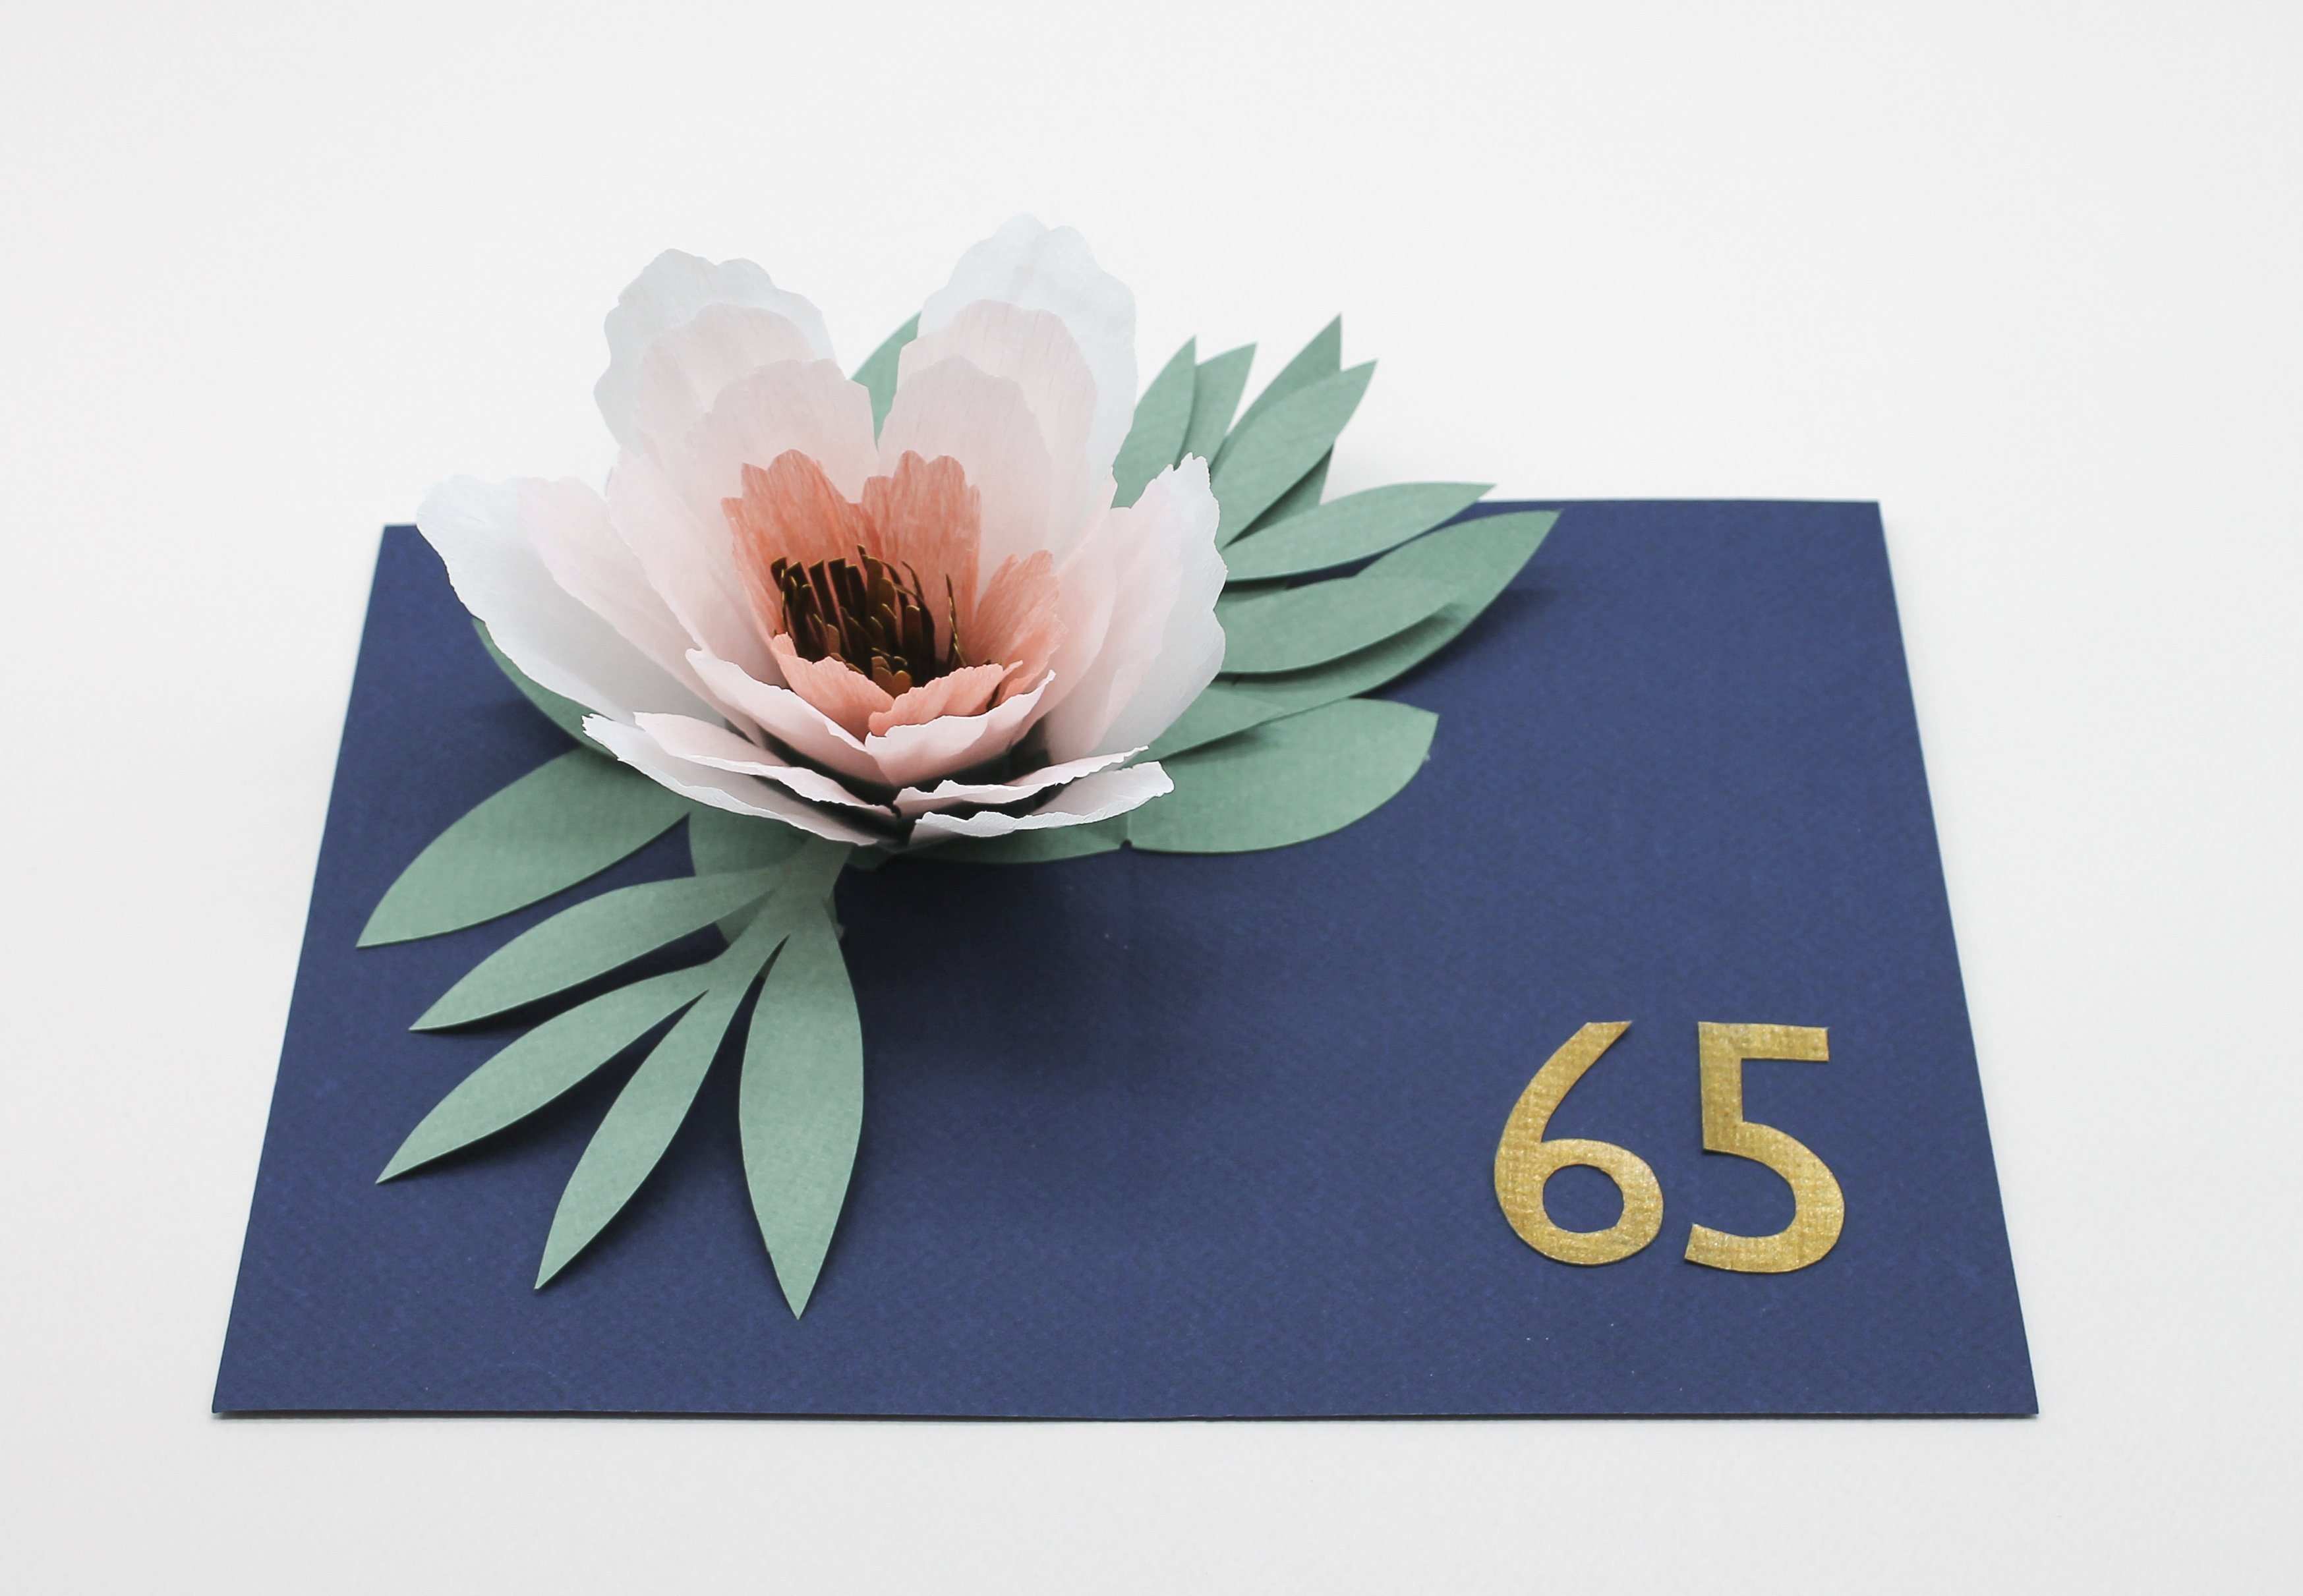 Pop up card flower faltmanufaktur tina kraus pop up card with a paper flower for a 65th birthday mightylinksfo